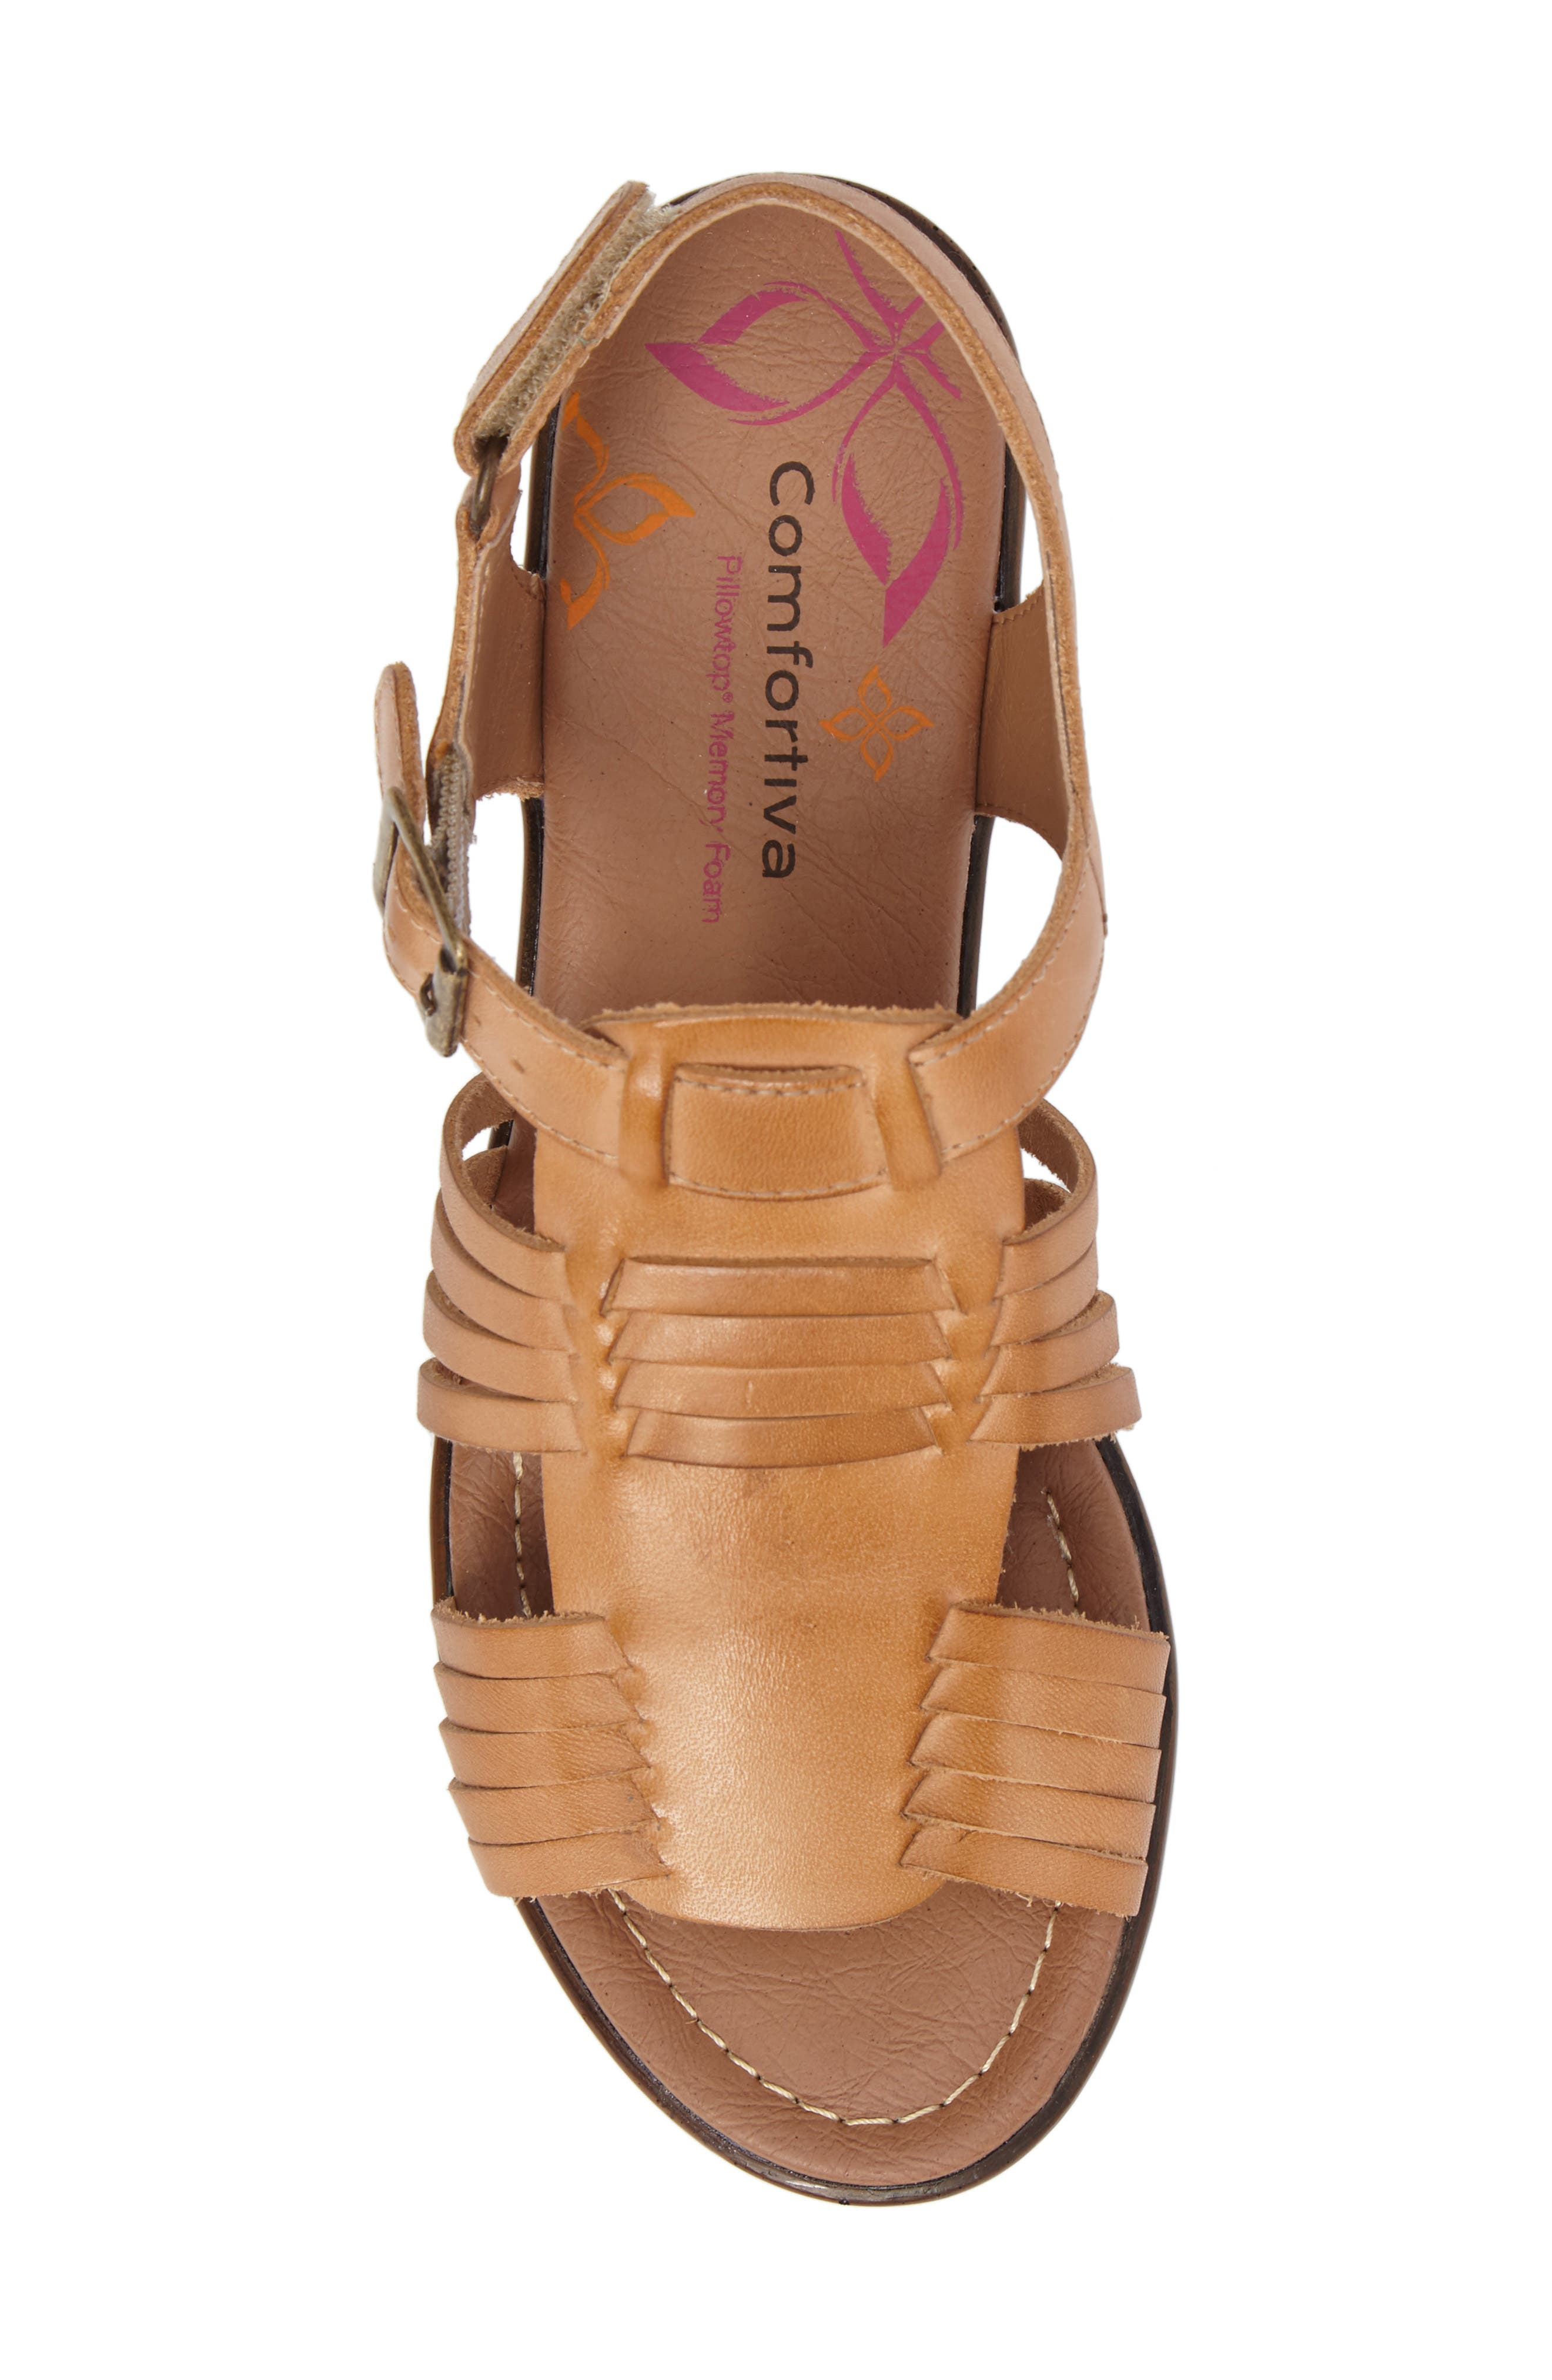 Freeport Sandal,                             Alternate thumbnail 5, color,                             NATURAL LEATHER